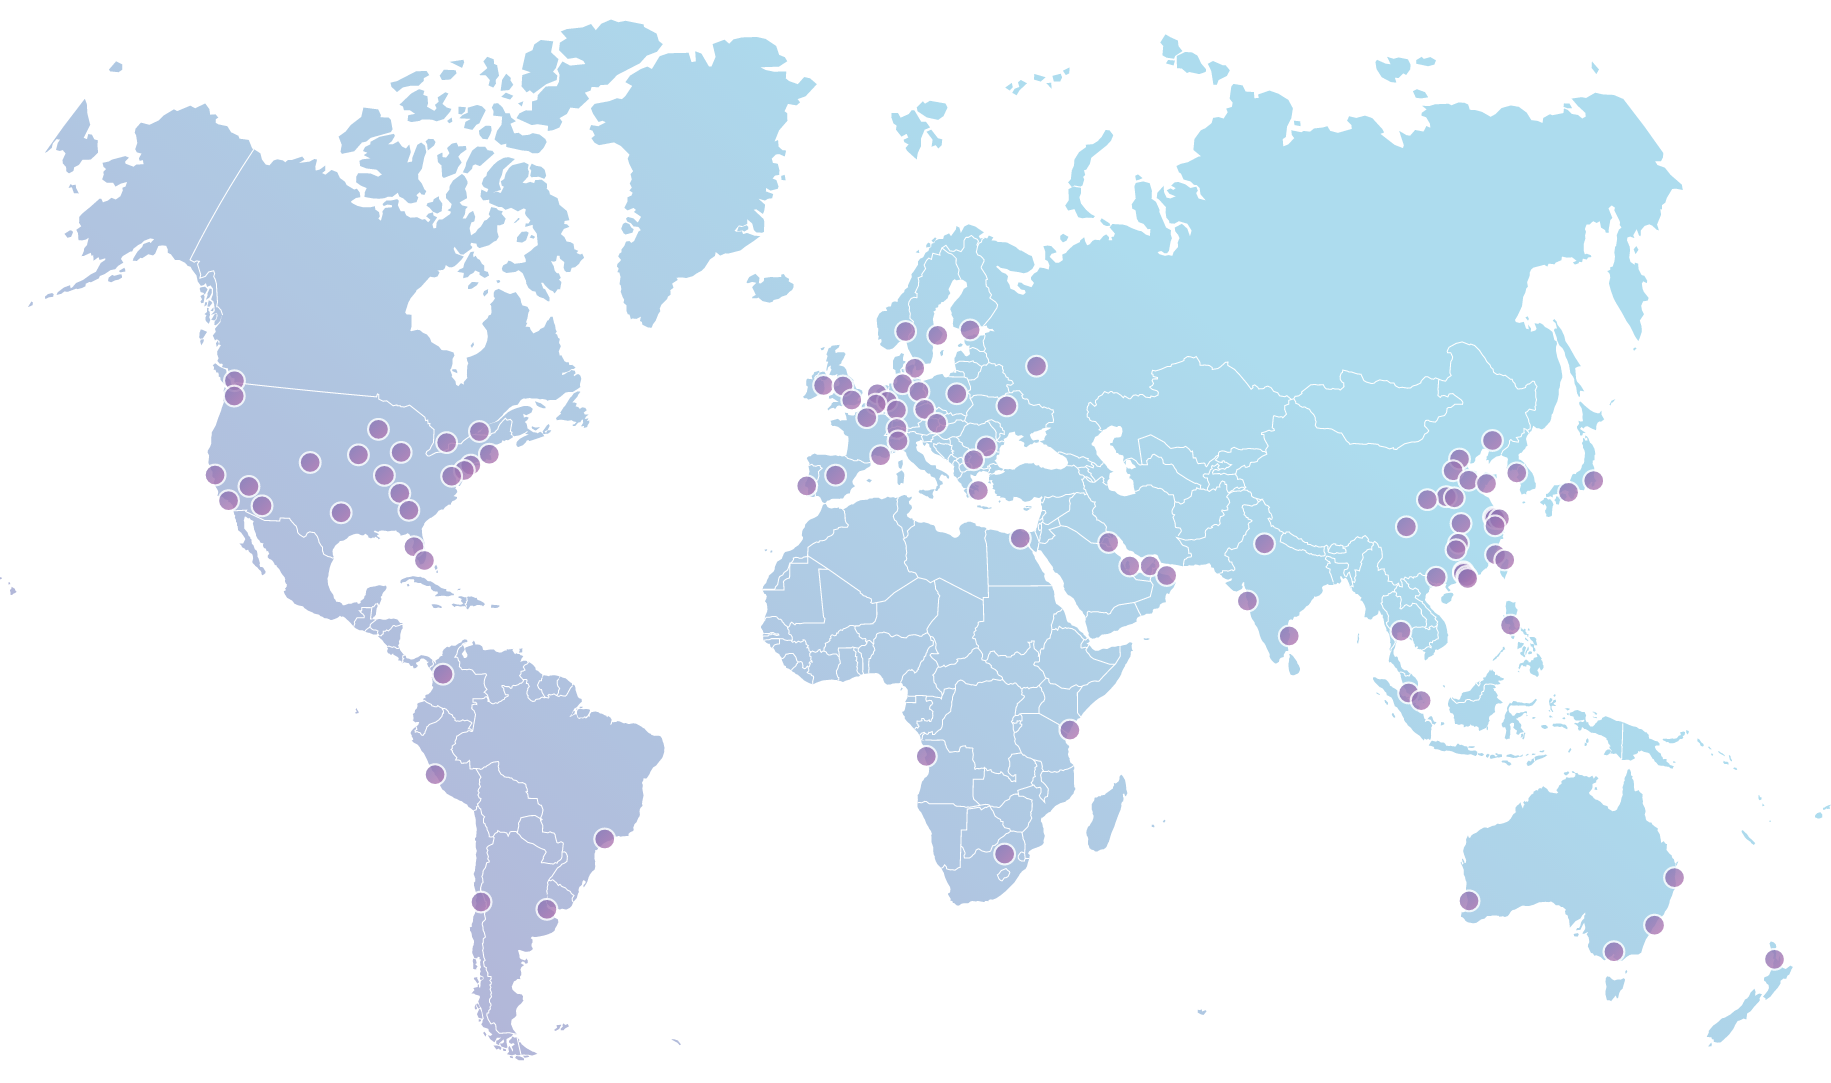 cloudflare map